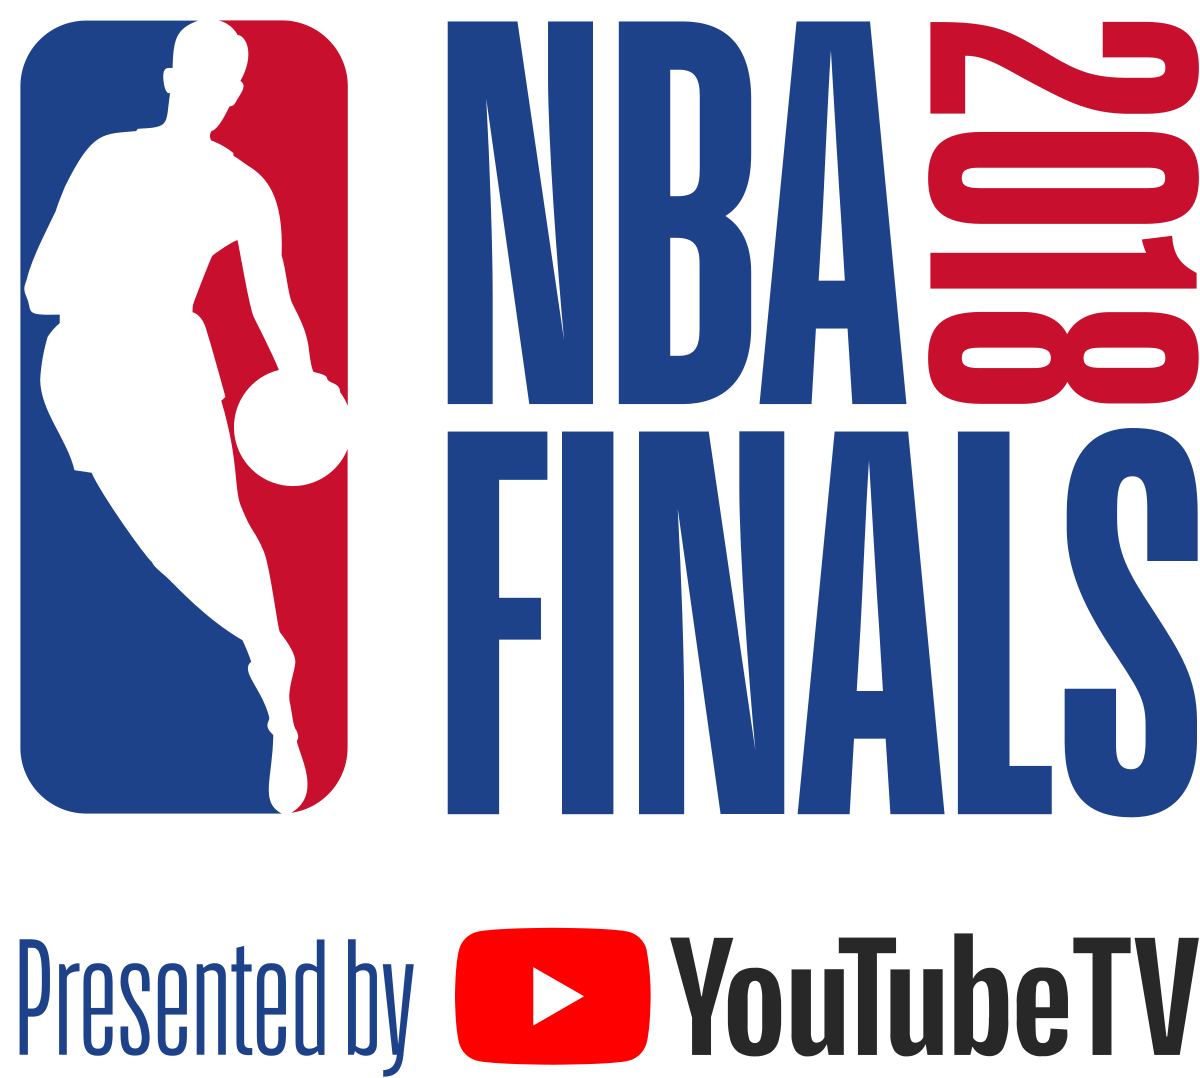 nba finals powered by youtubetv logo #33590